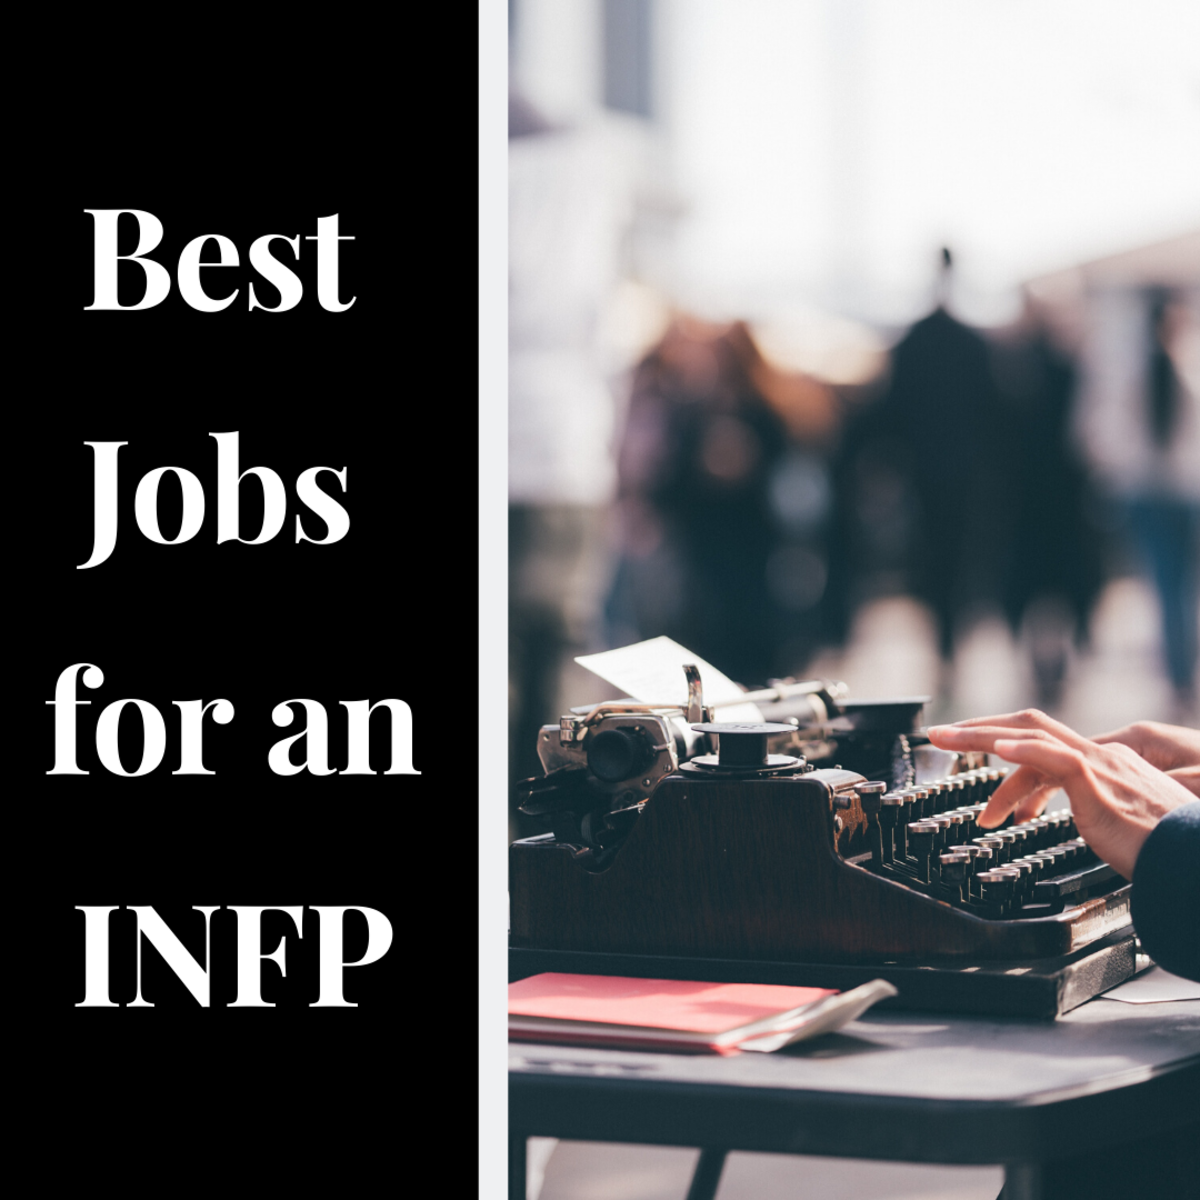 INFP personality types make for great writers and psychologists.